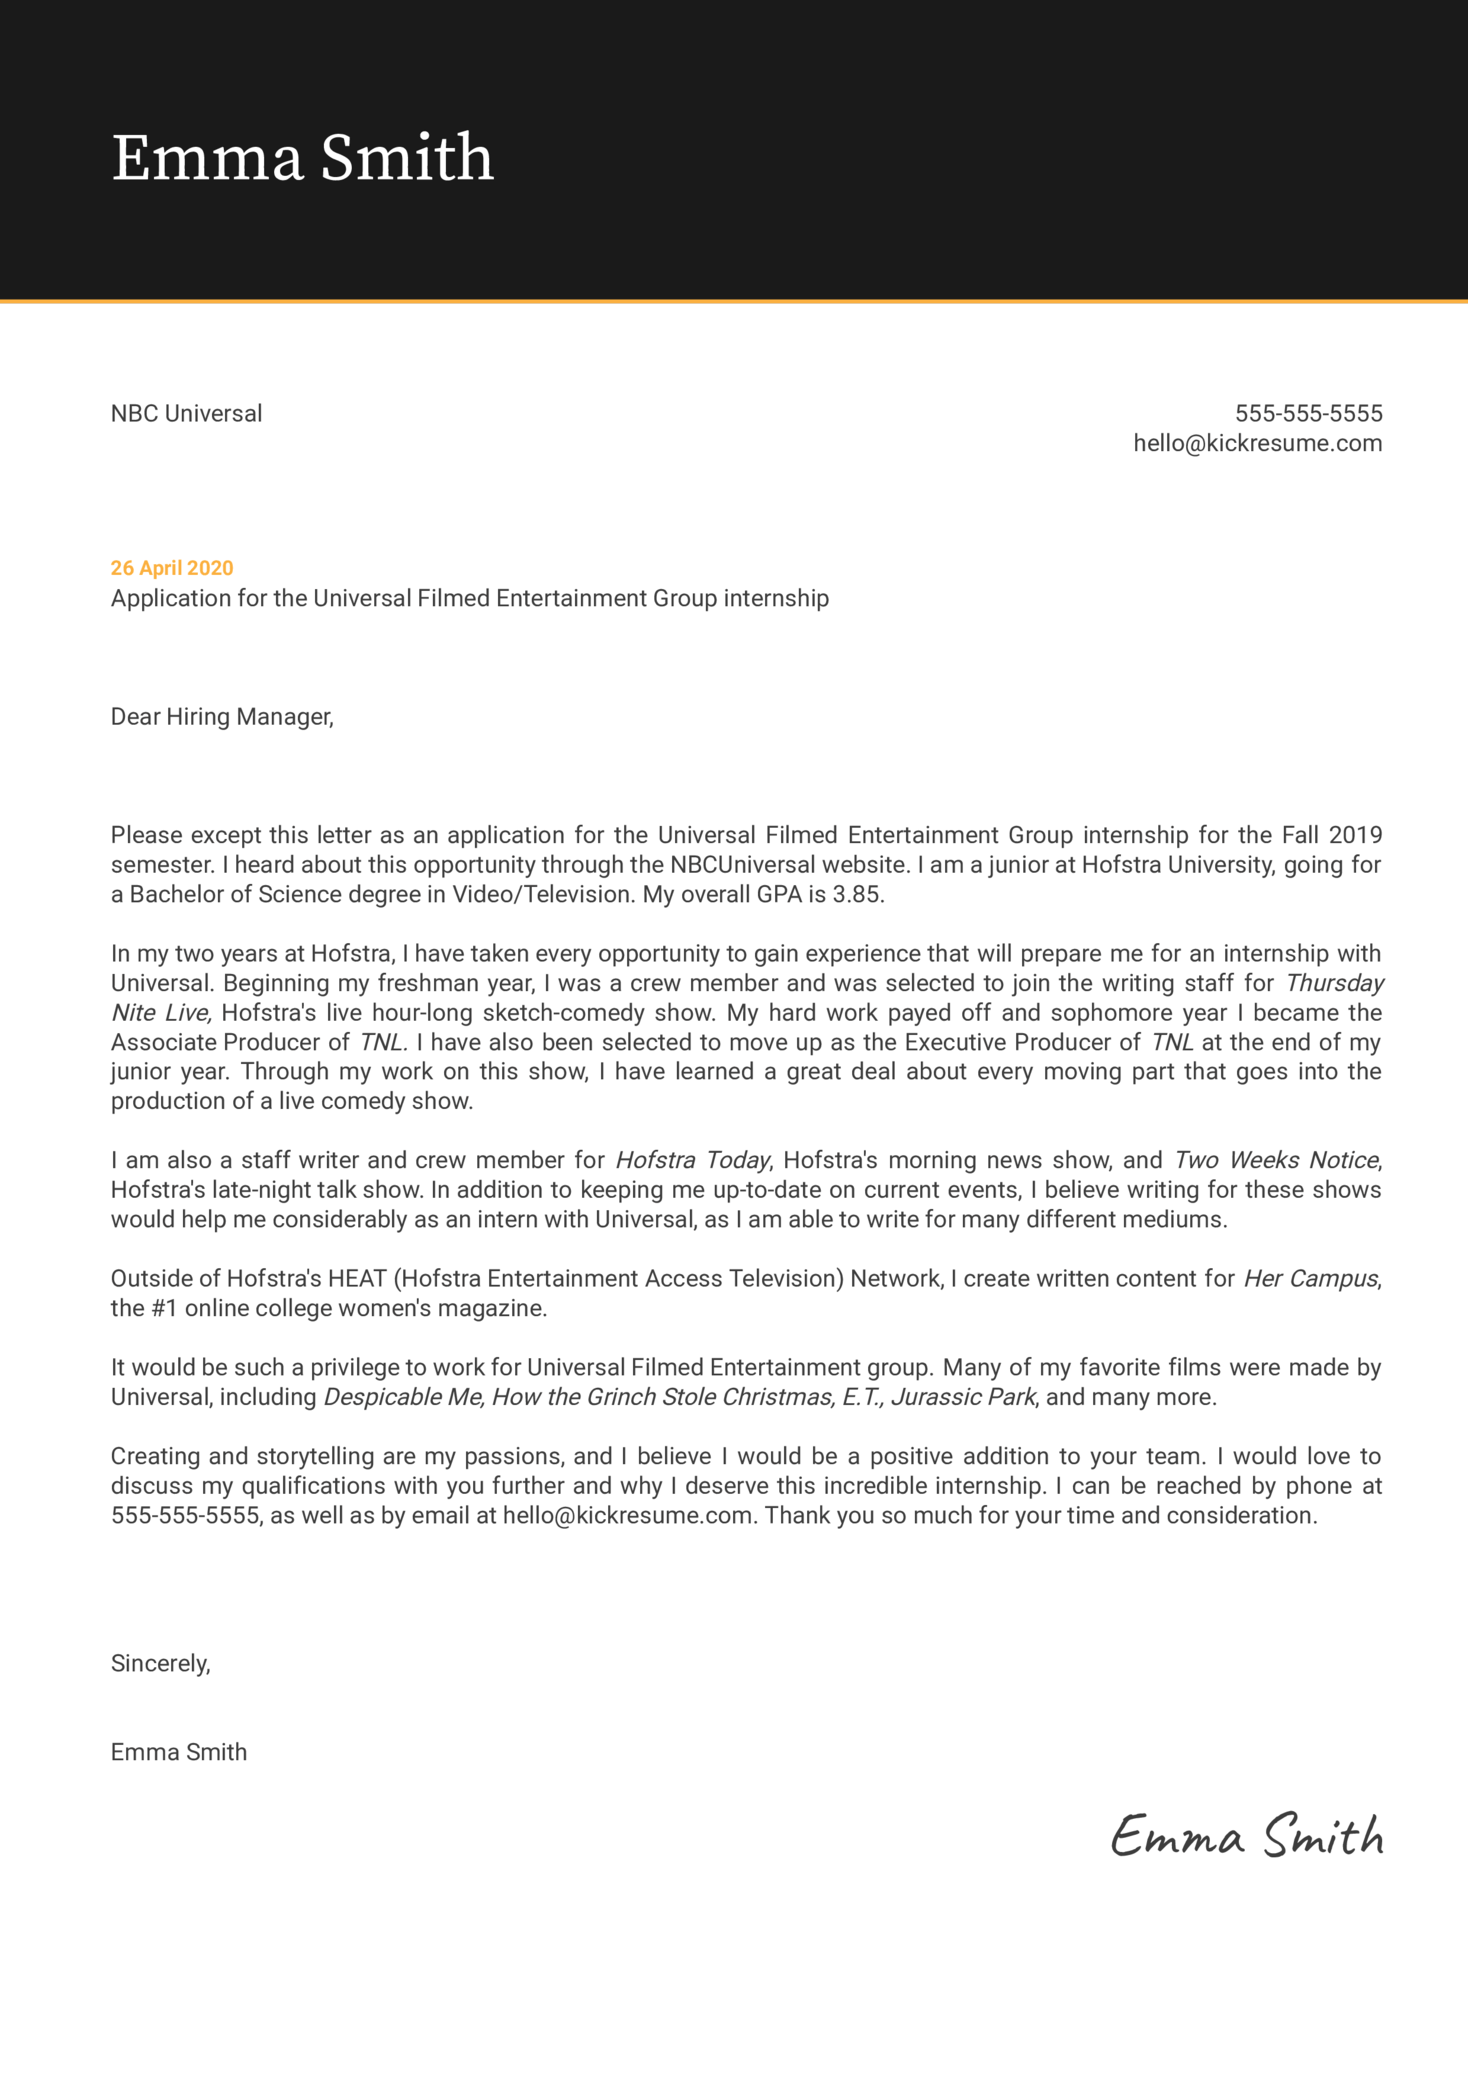 Intern at NBC Cover Letter Sample